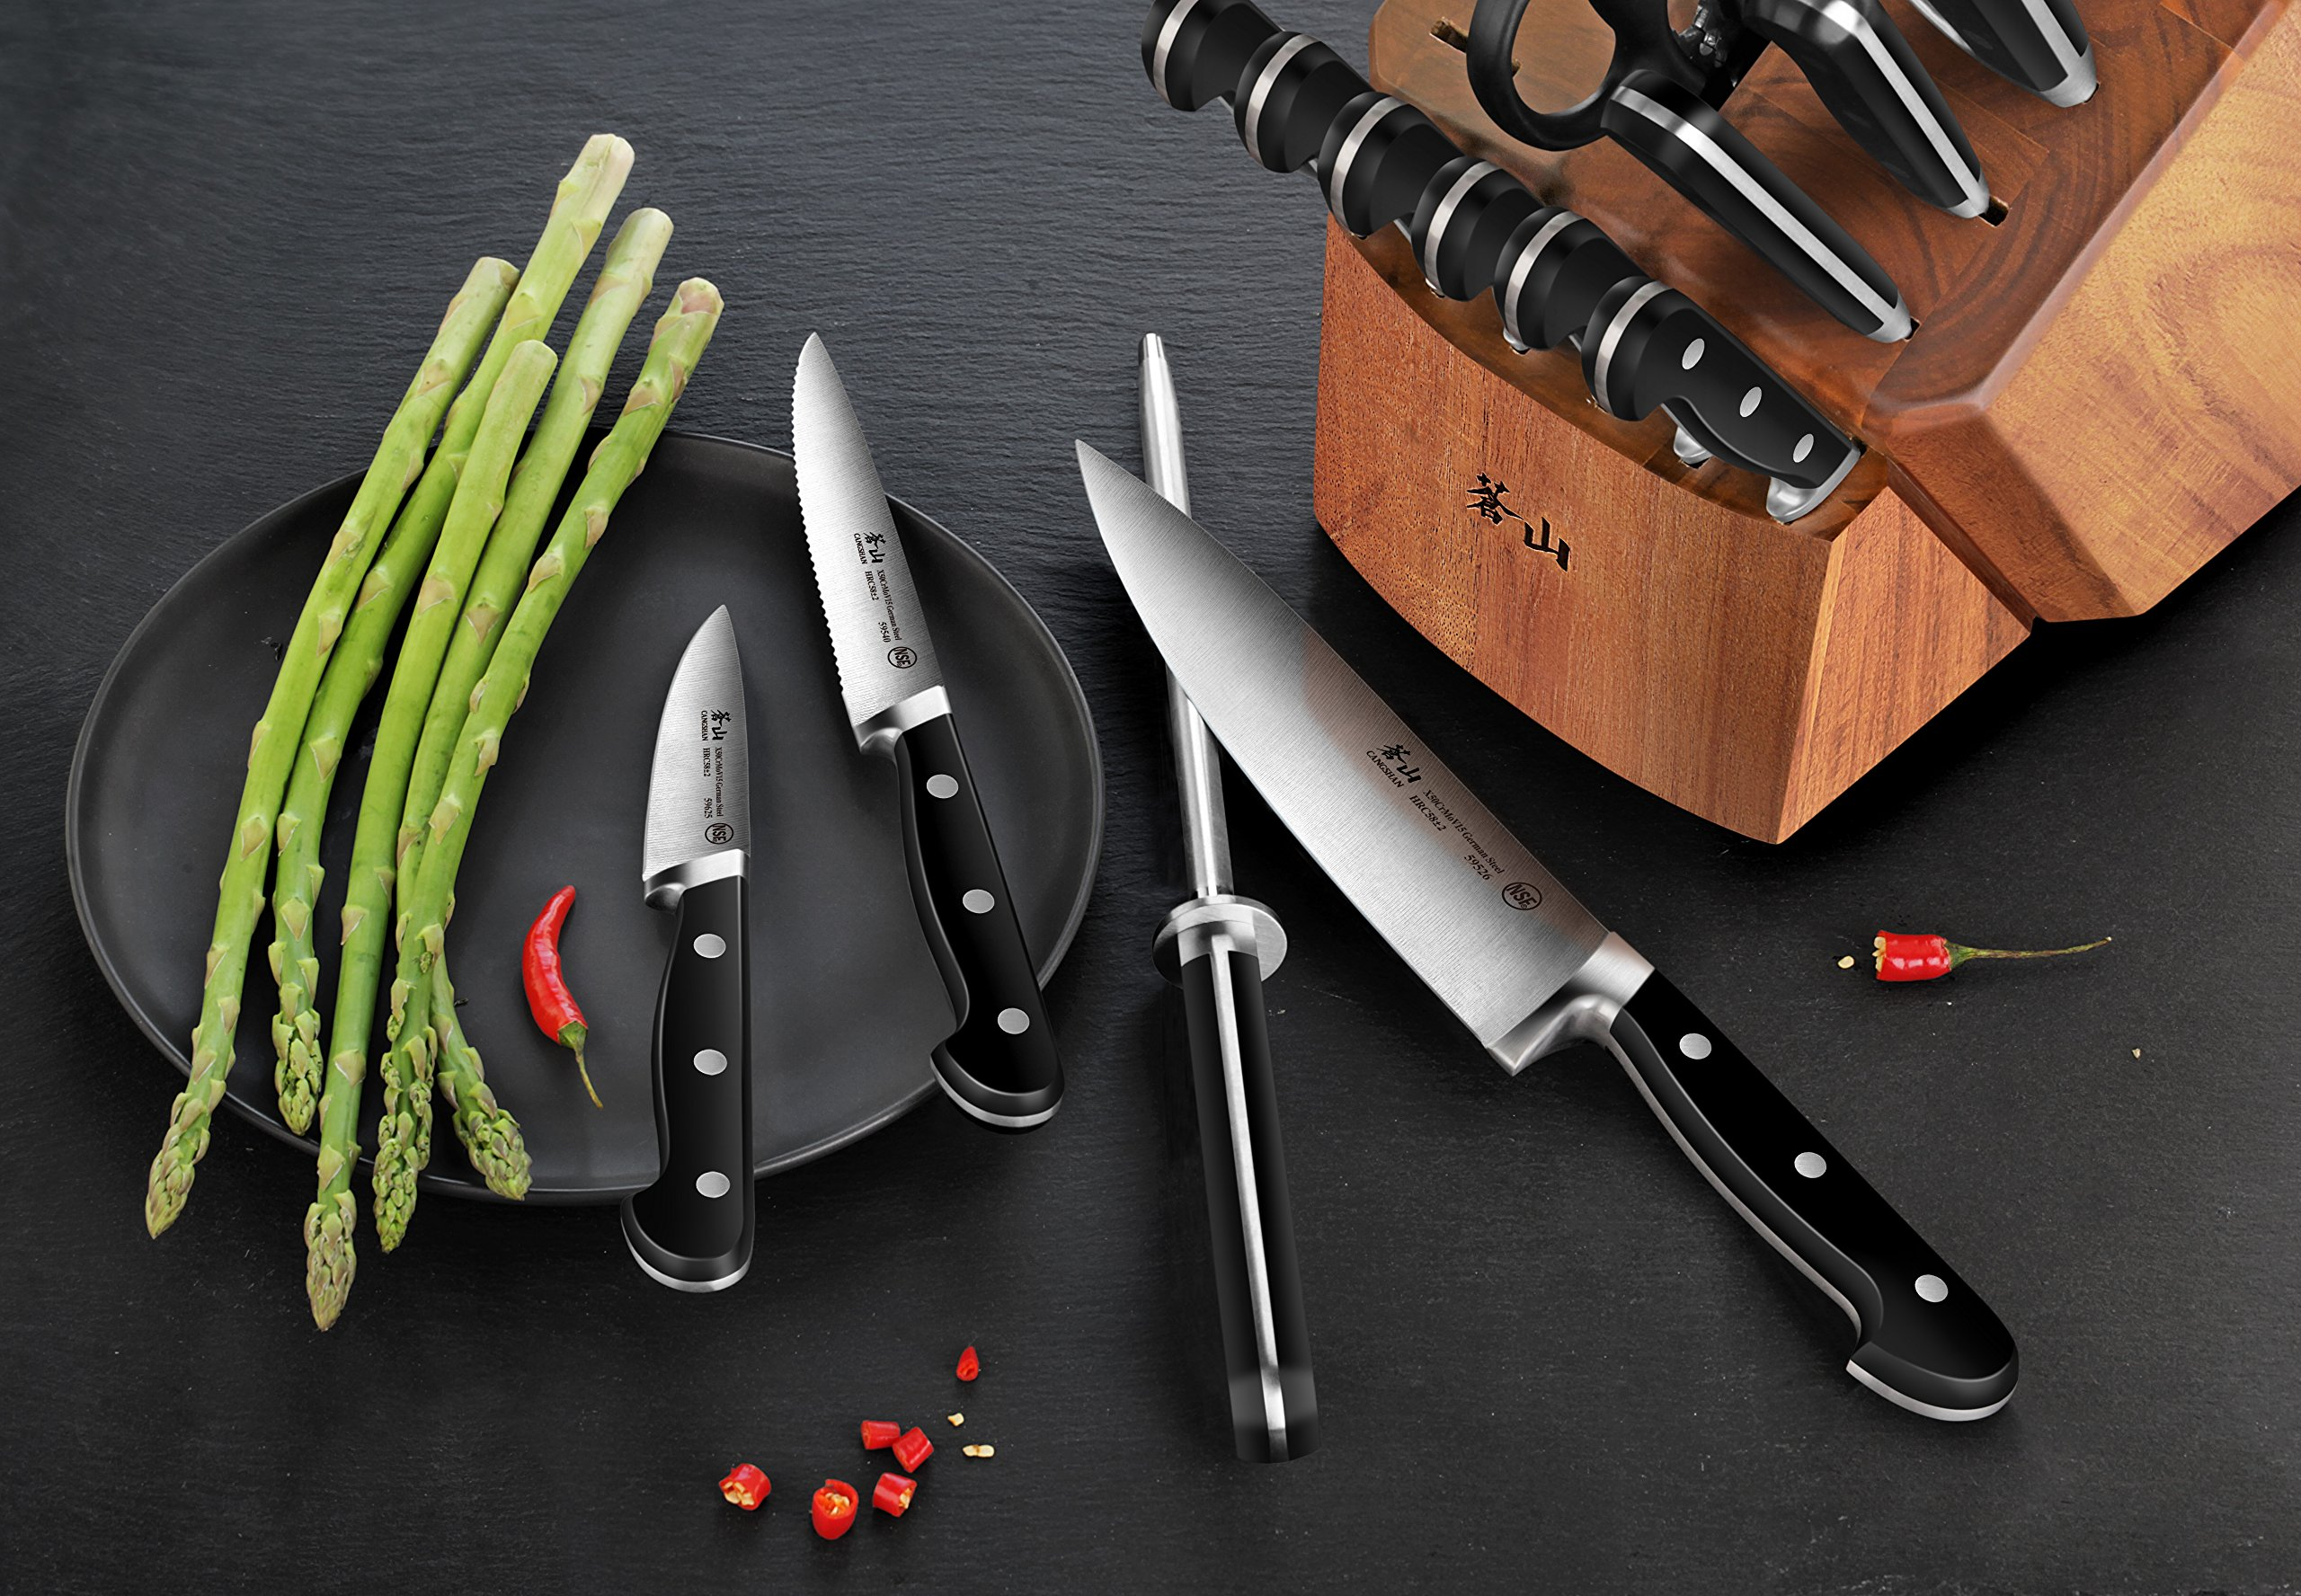 Cangshan V2 Series 1022551 German Steel Forged 17-Piece Knife Block Set , Acacia by Cangshan (Image #4)